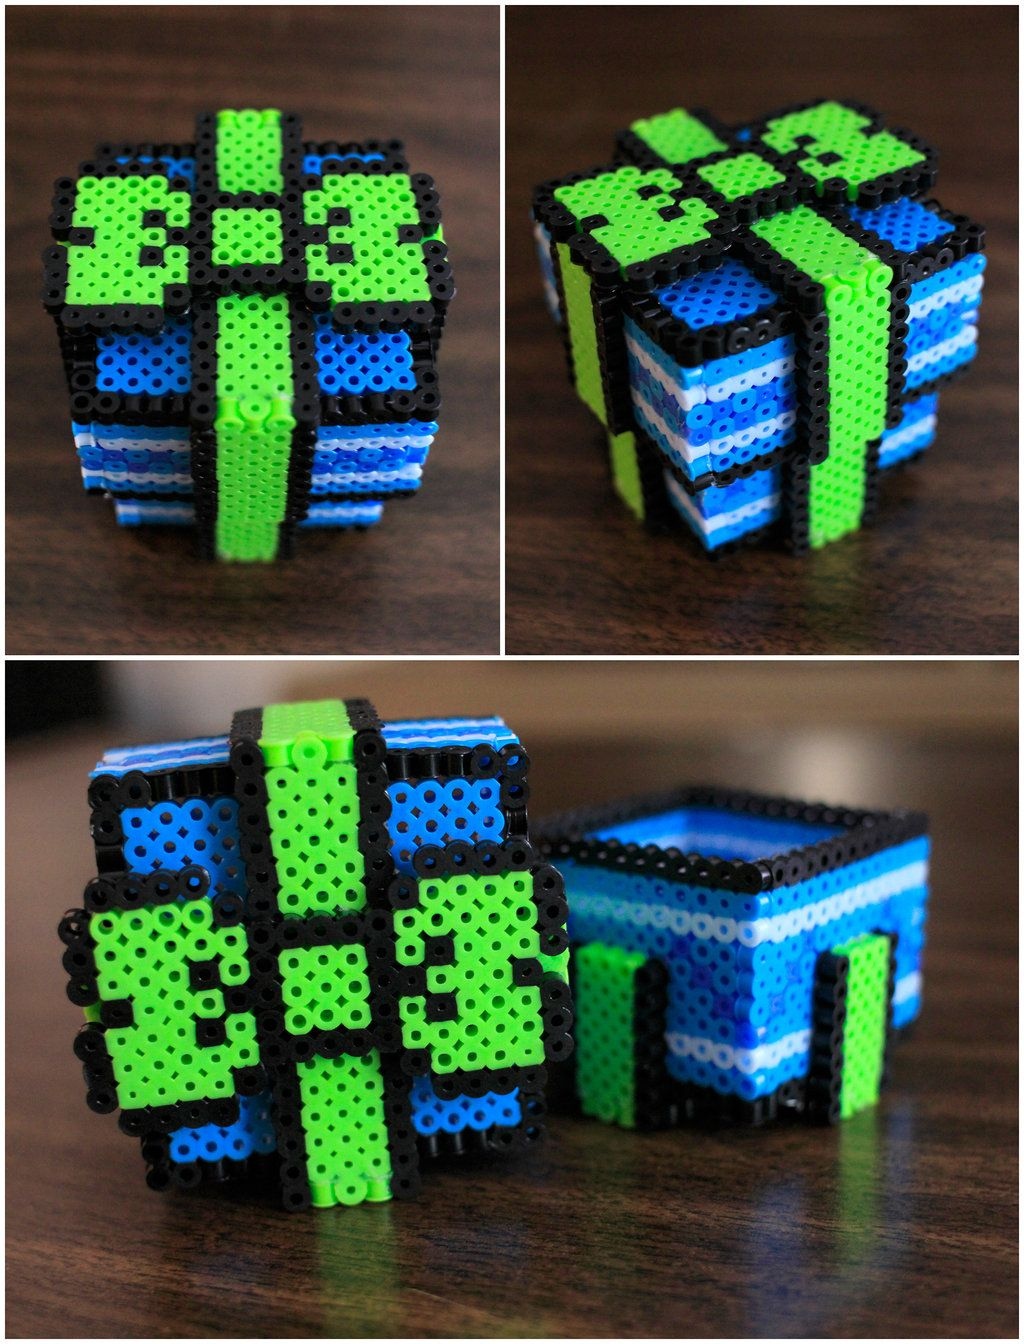 3d perler bead gift box by pkmnmastertash on deviantart [ 1024 x 1344 Pixel ]